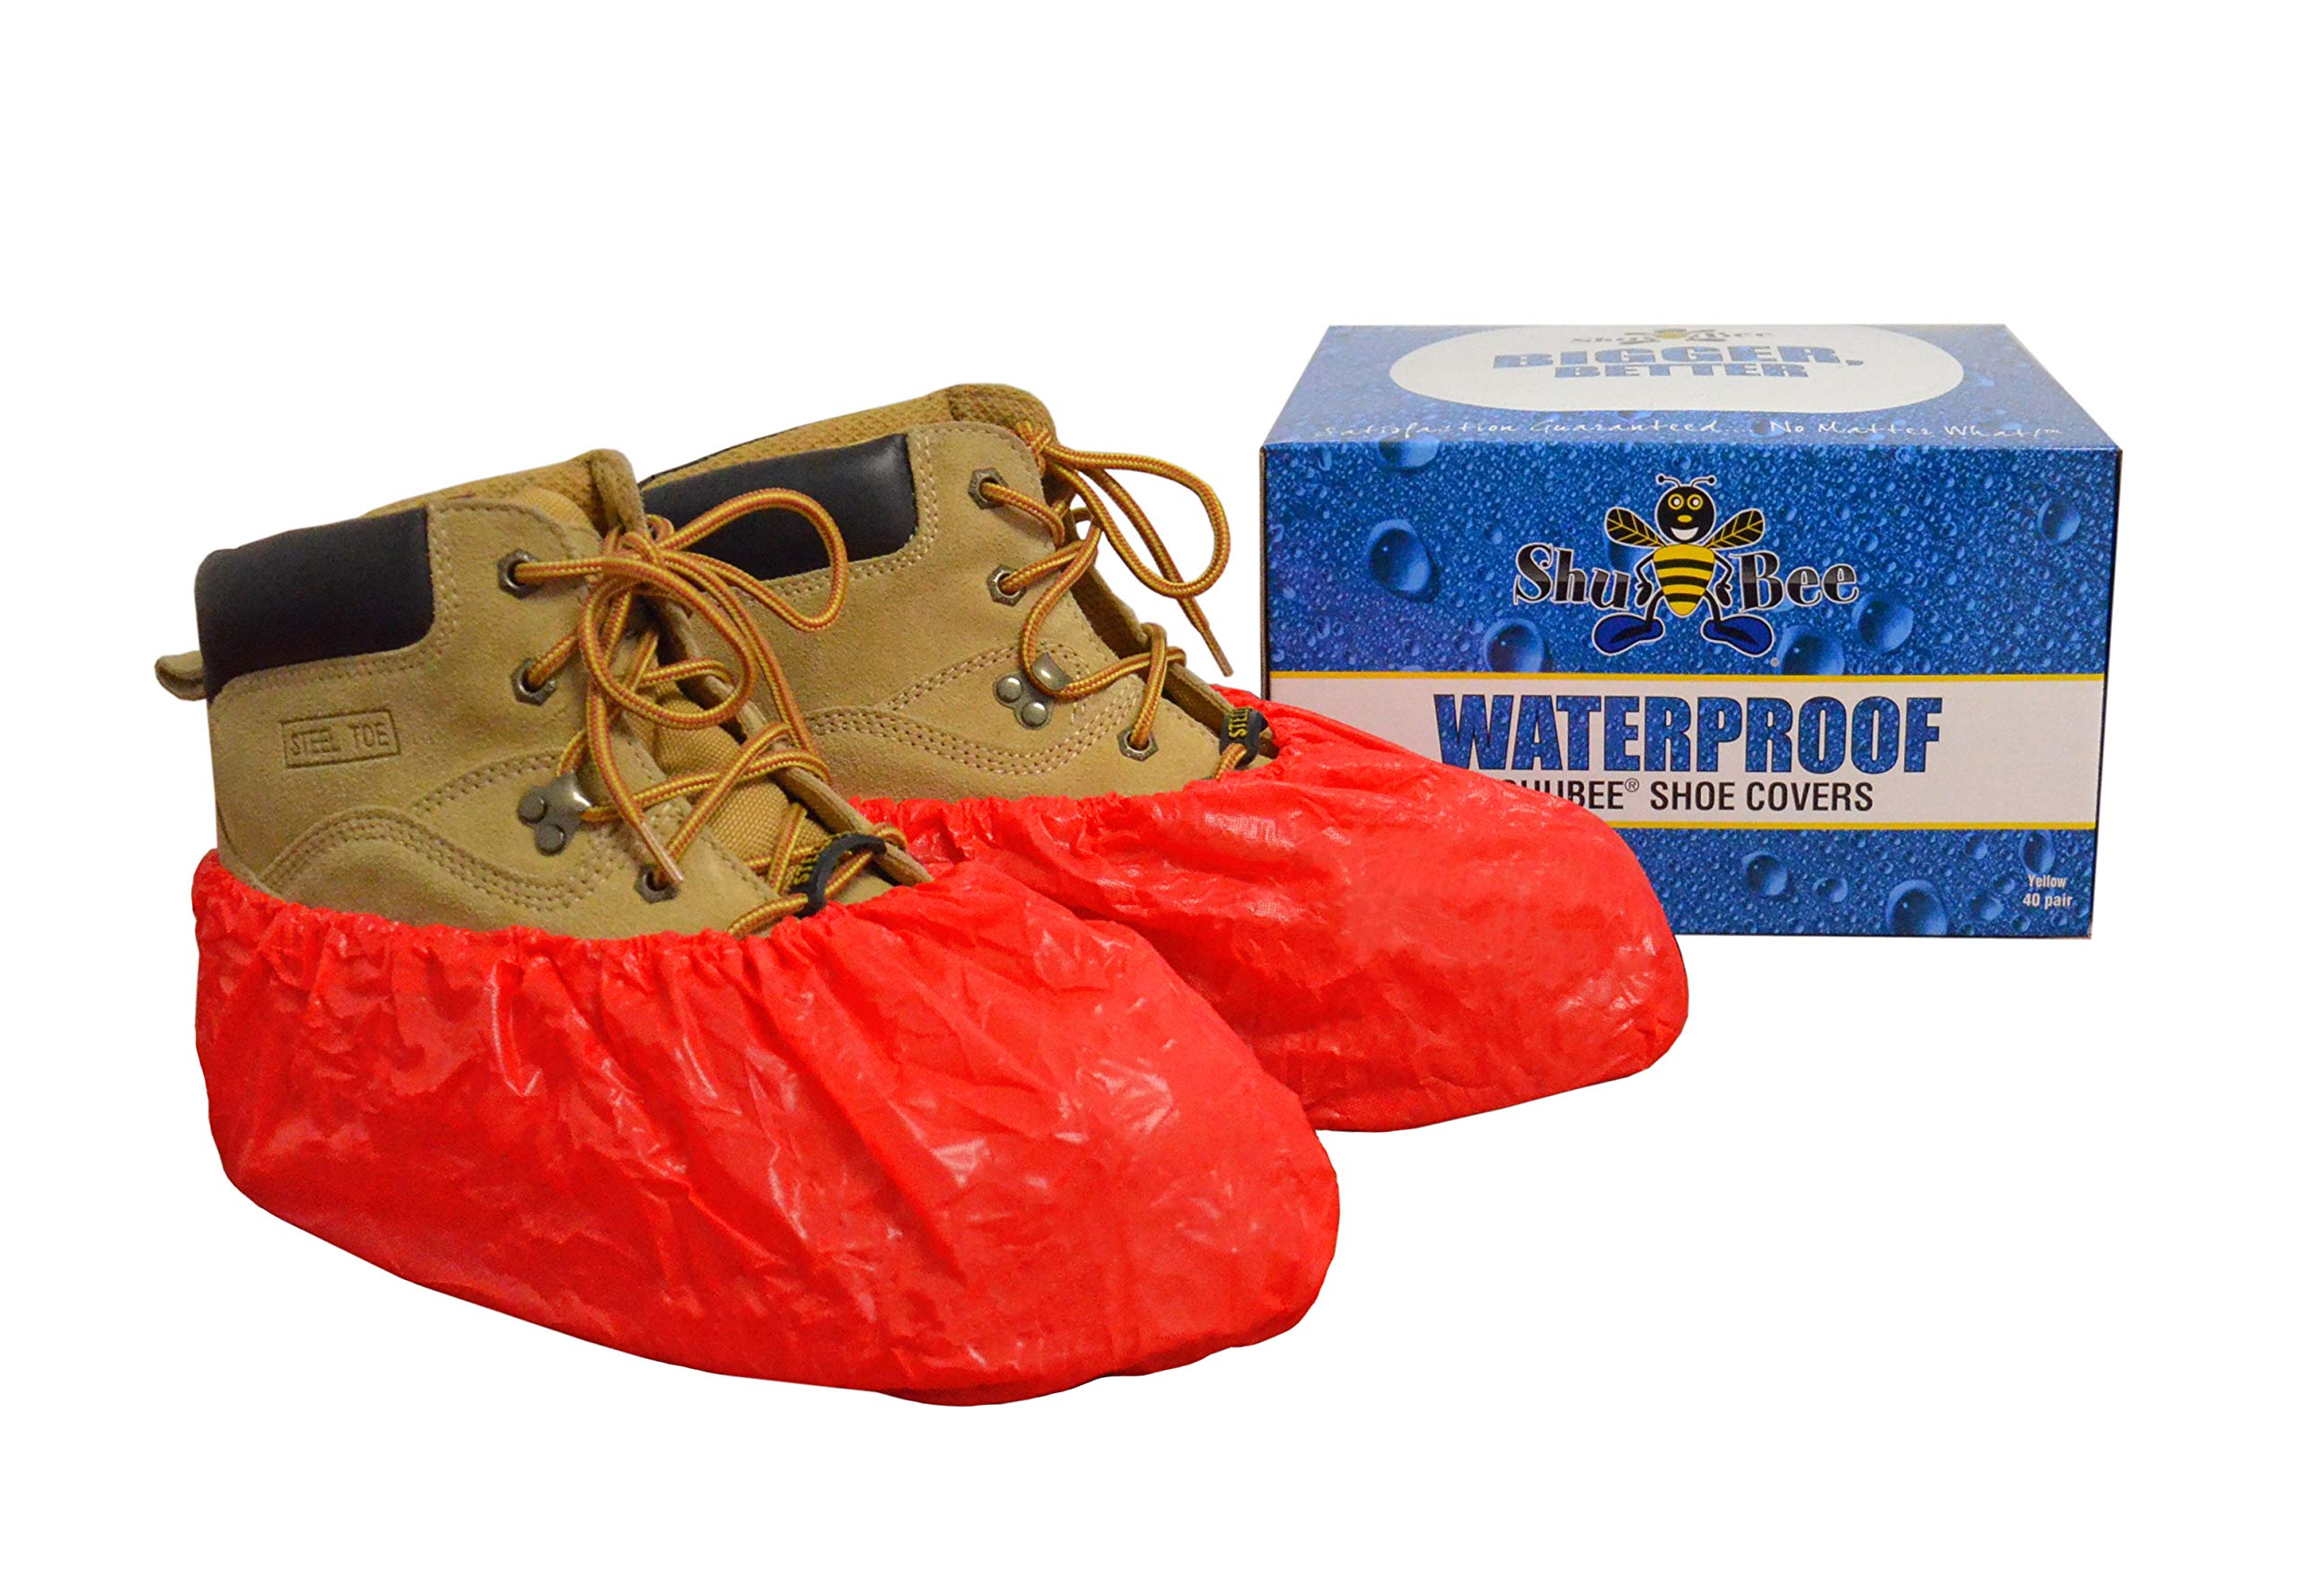 ShuBee Waterproof Shoe Covers, Red (40 Pair)